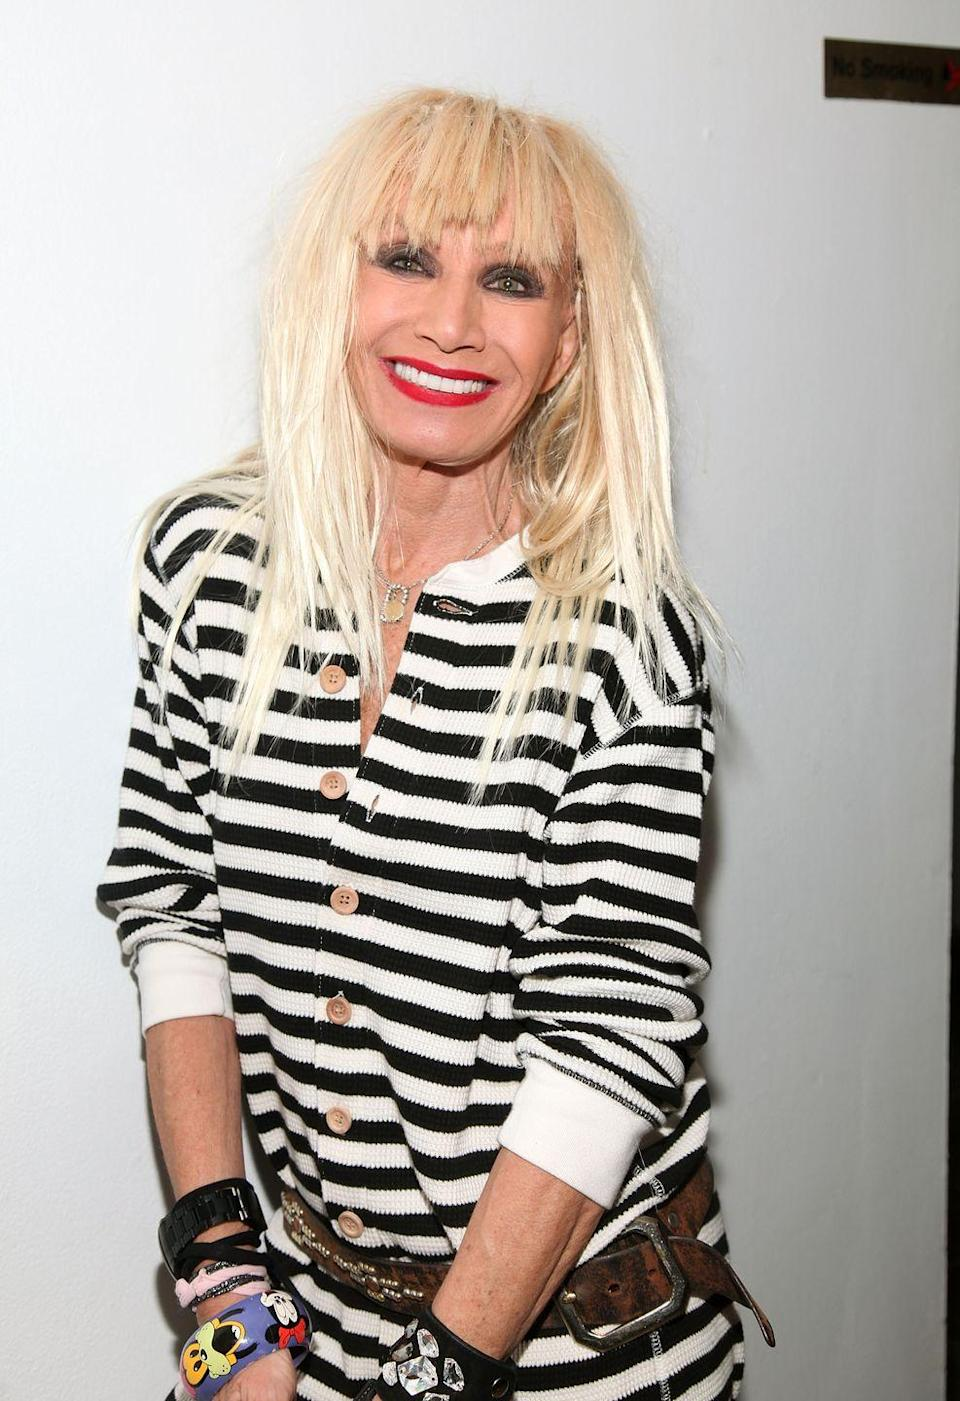 <p>Fashion designer Johnson was diagnosed with breast cancer at 57. Other than telling her daughter, Lulu, she kept her battle under wraps until she was cancer-free. She is now open about her journey and is an advocate for cancer awareness. </p>